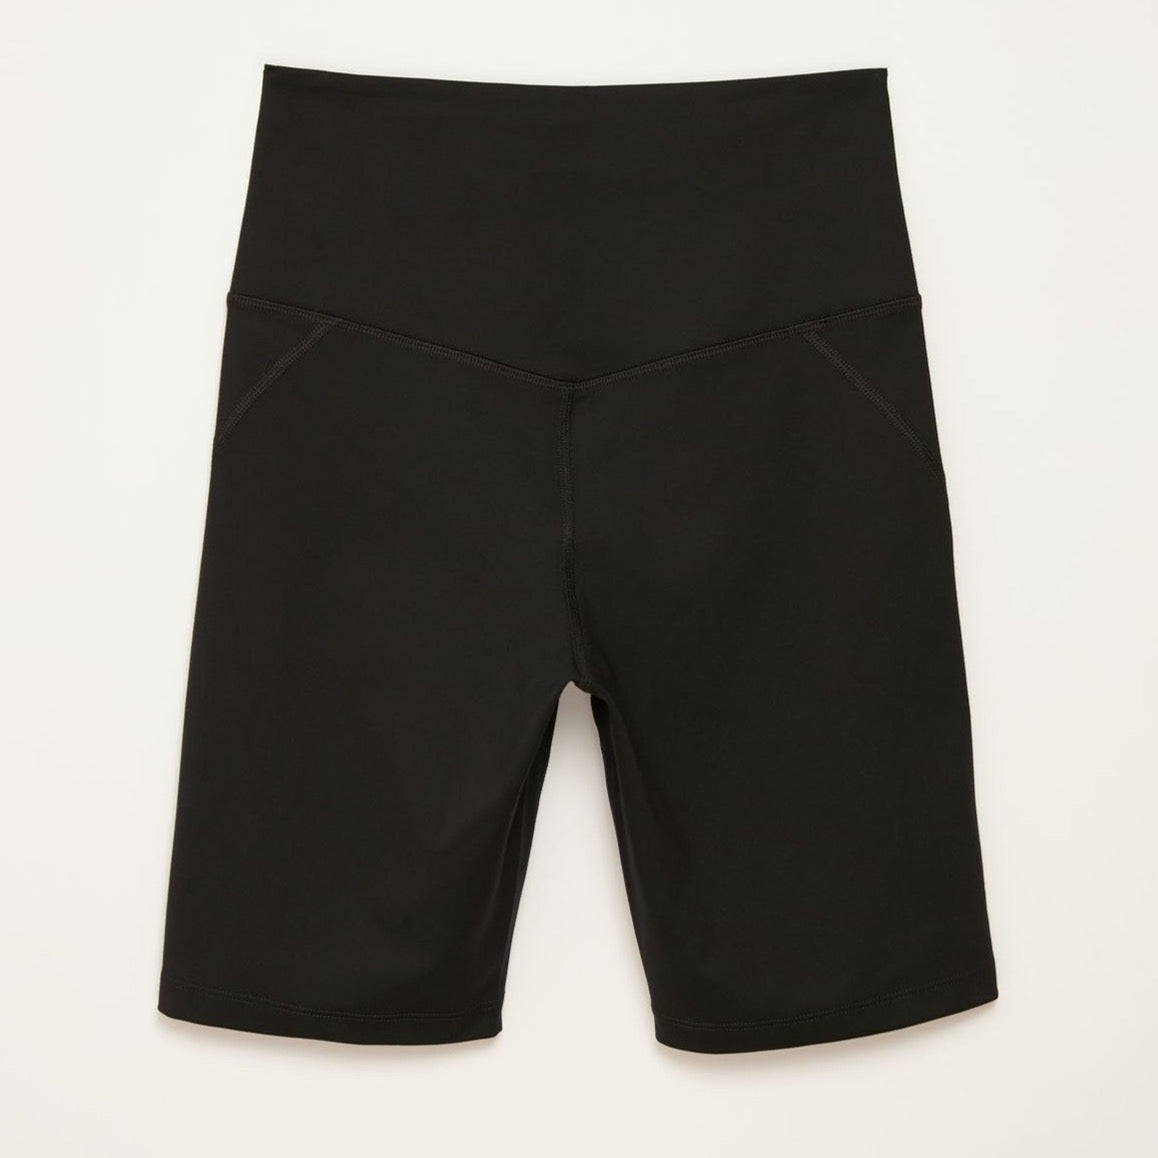 Girlfriend Collective Black High-Rise Bike Short